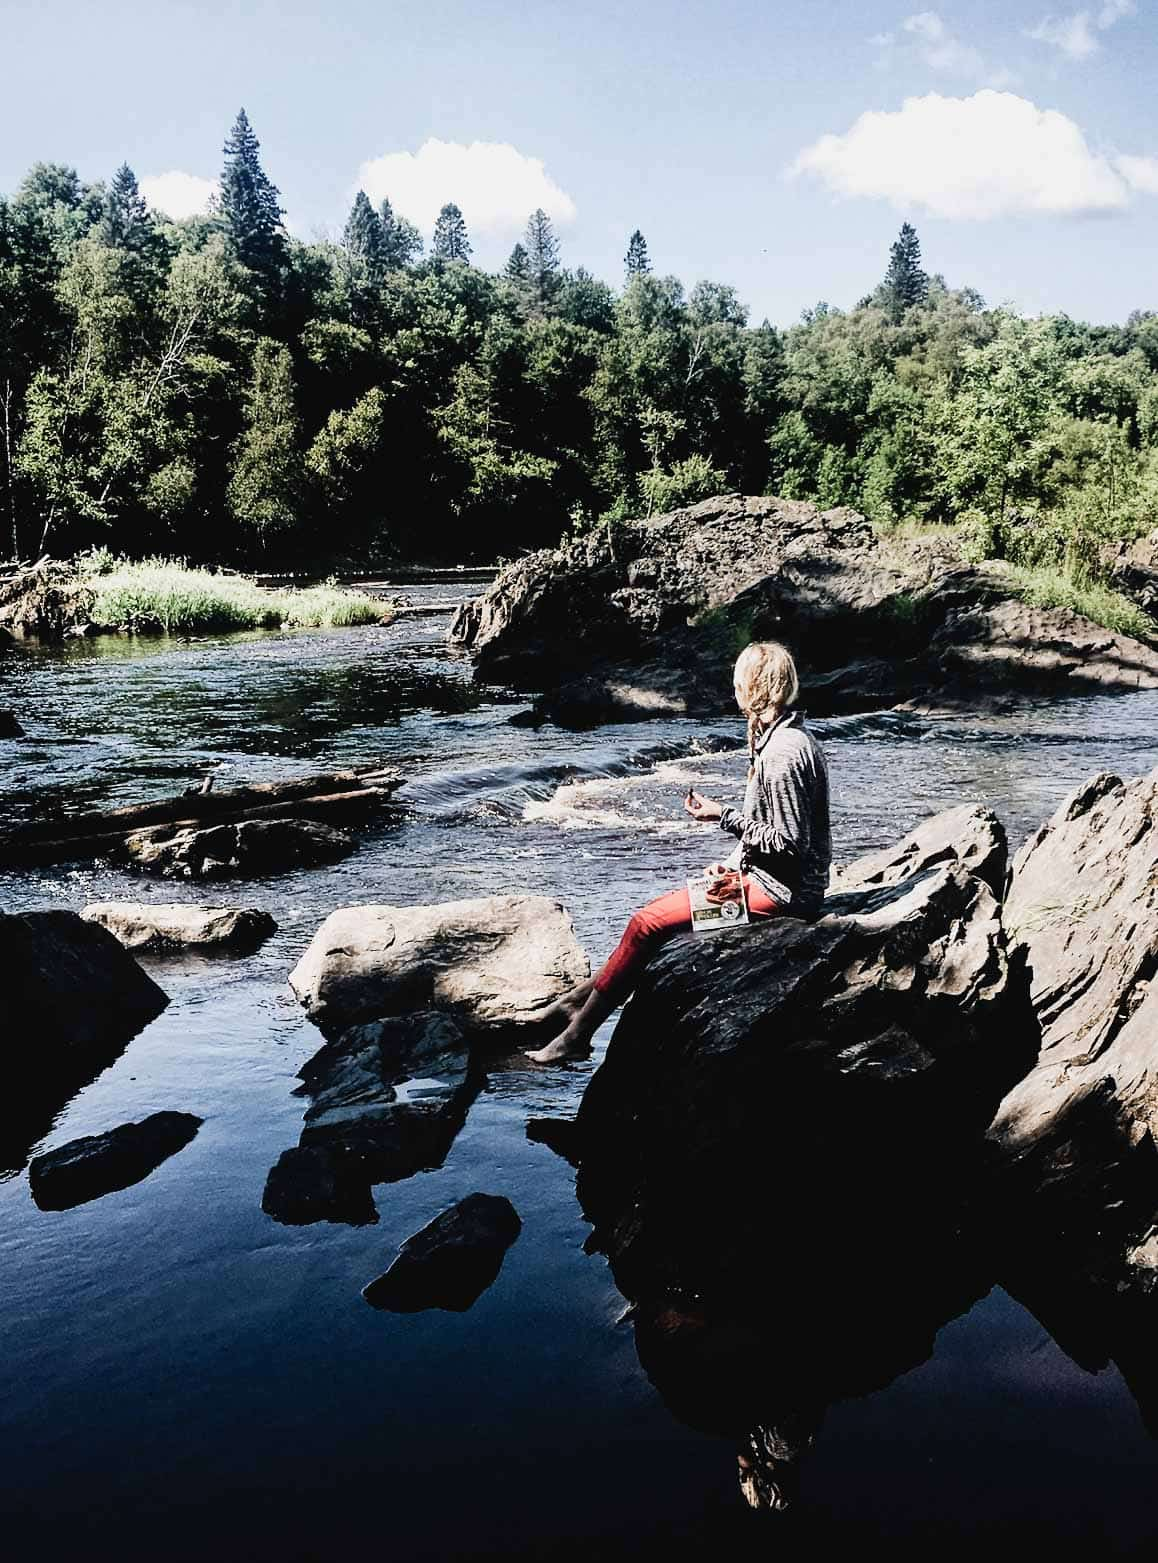 Five Picturesque, Low-Key Hikes in Northern Minnesota